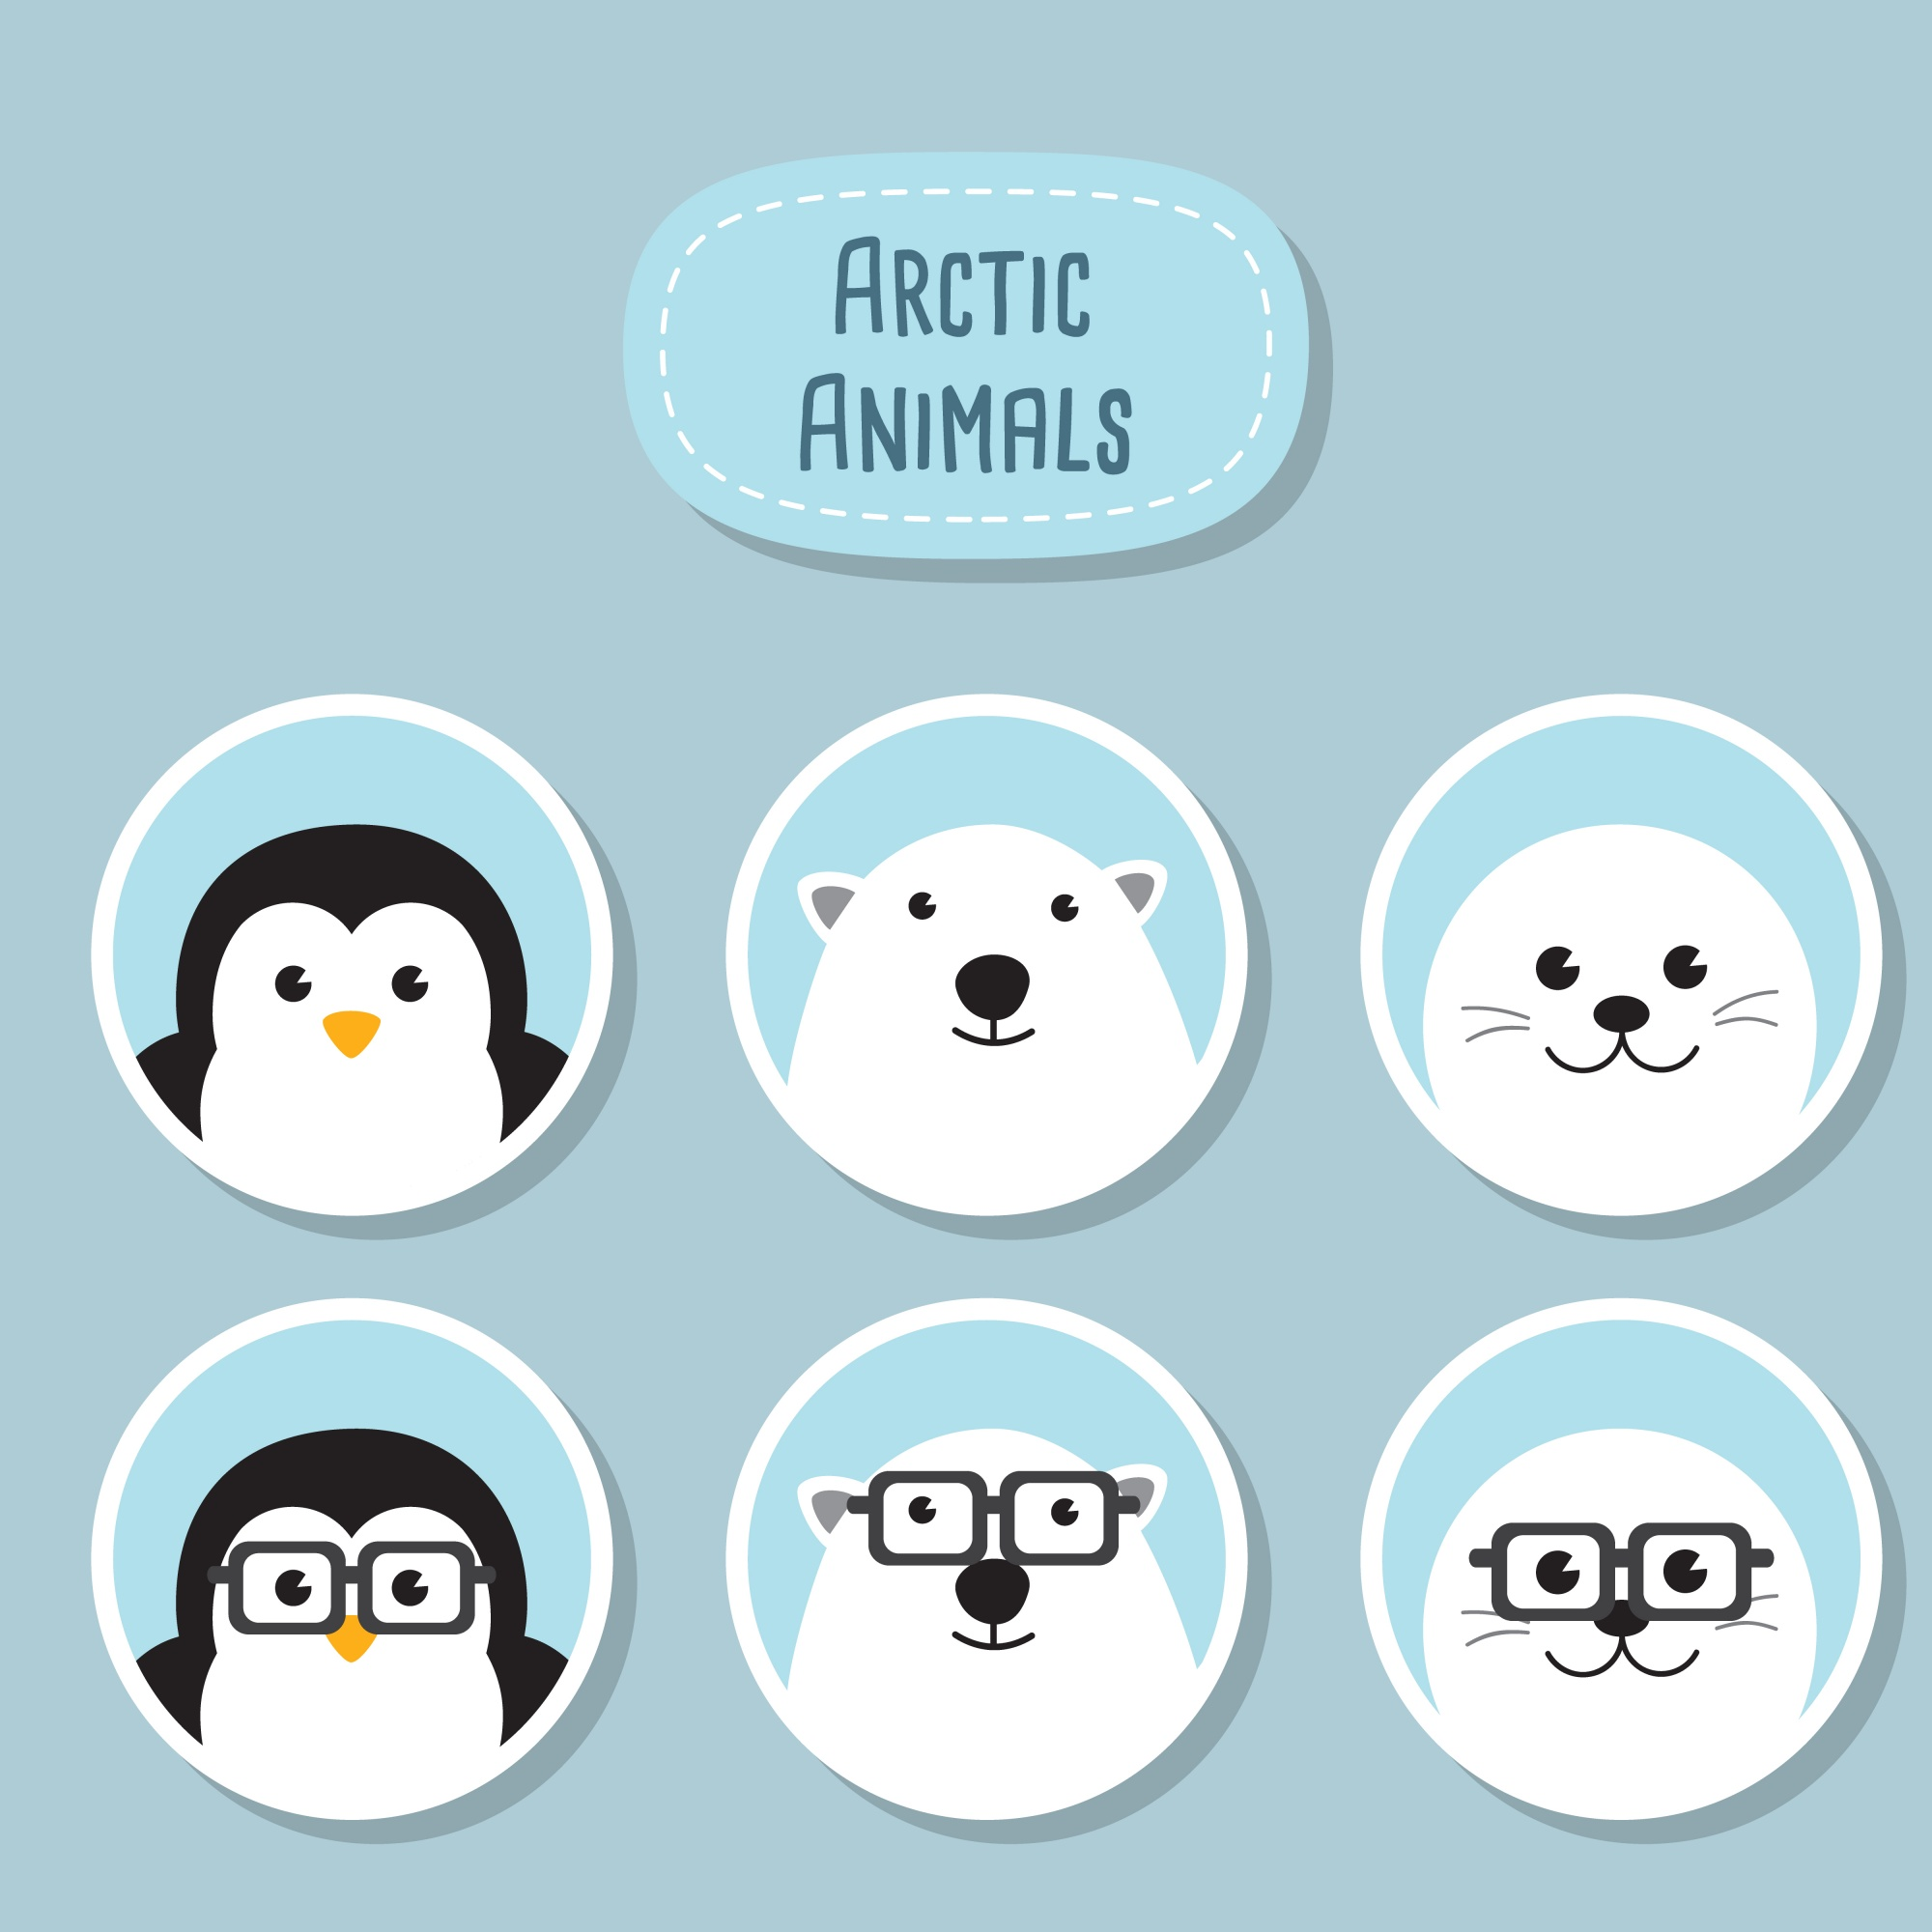 Arctic Animals Flat Icons Set. A cute Penguin, Polar bear and Baby seal with funny nerd glasses. Animals Geek Hipster Characters.